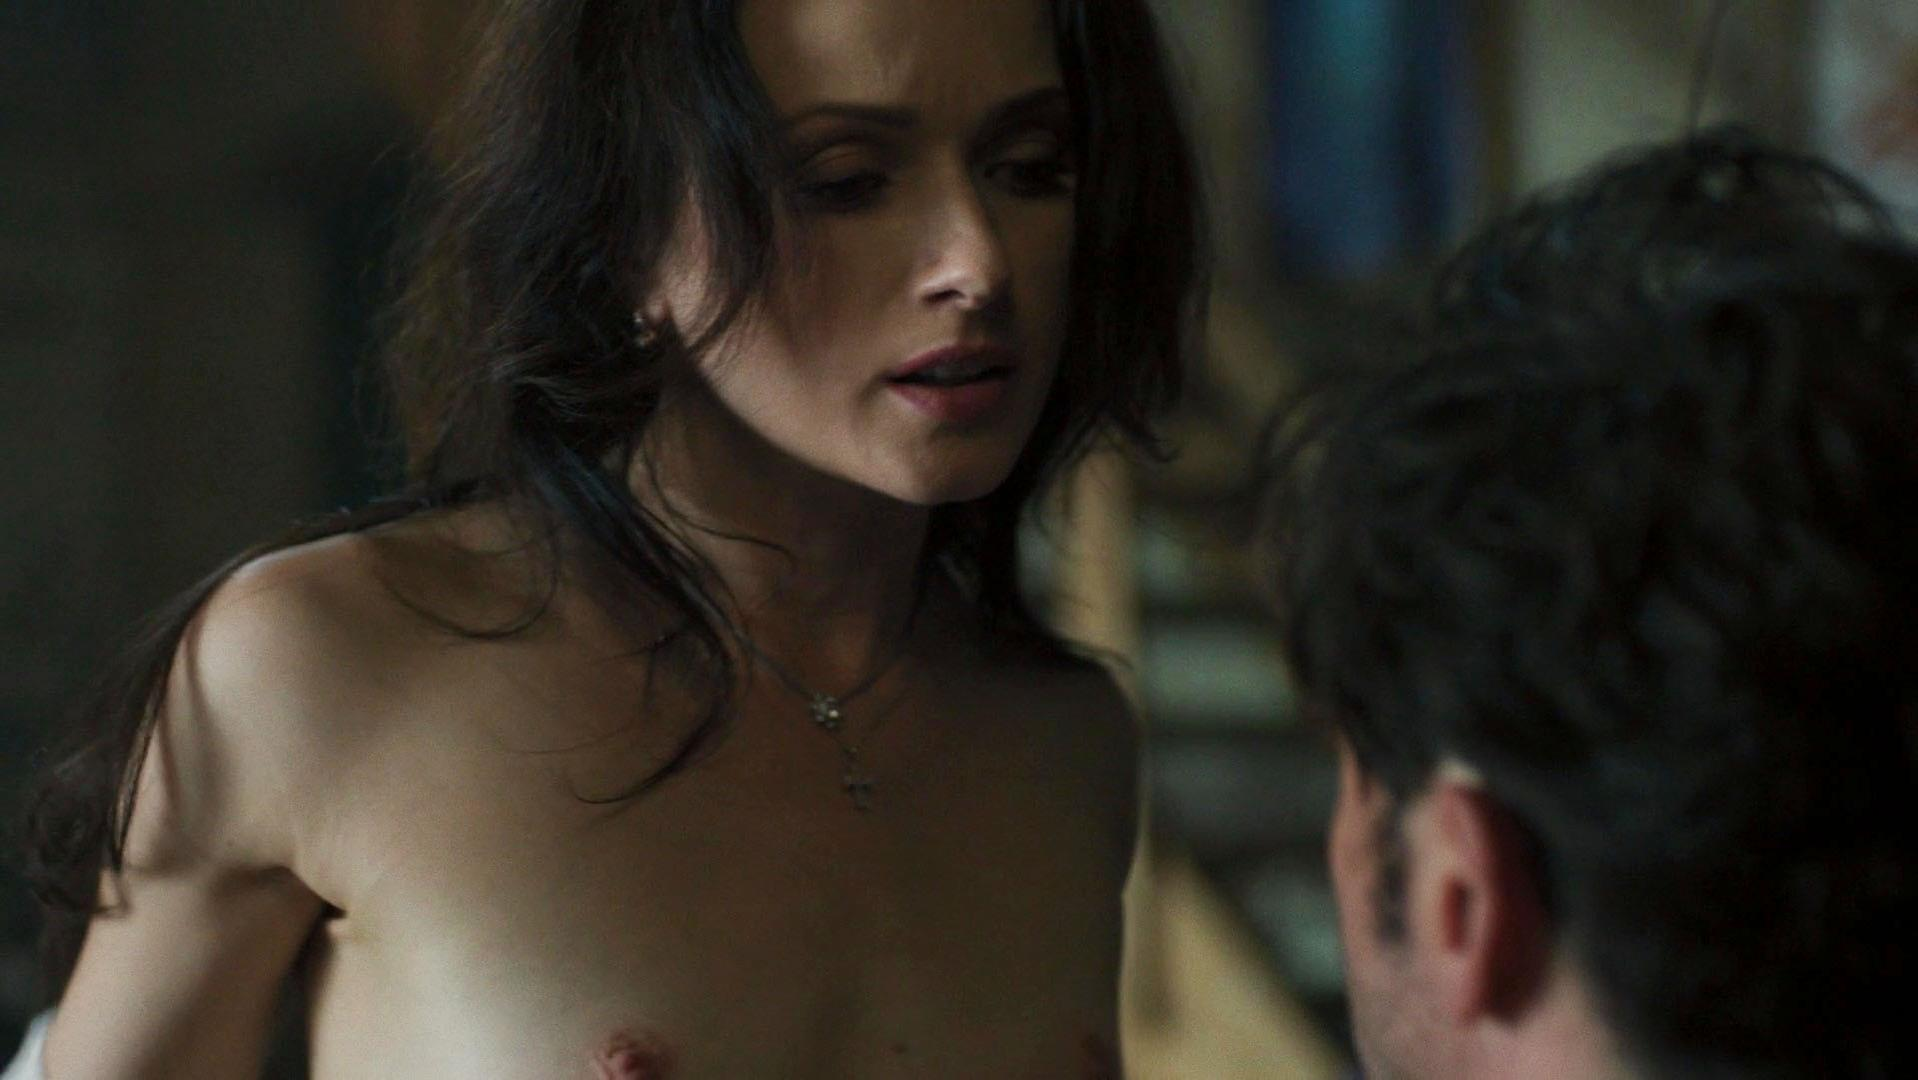 Irina Dvorovenko nude - Flesh and Bone s01e07 (2015)